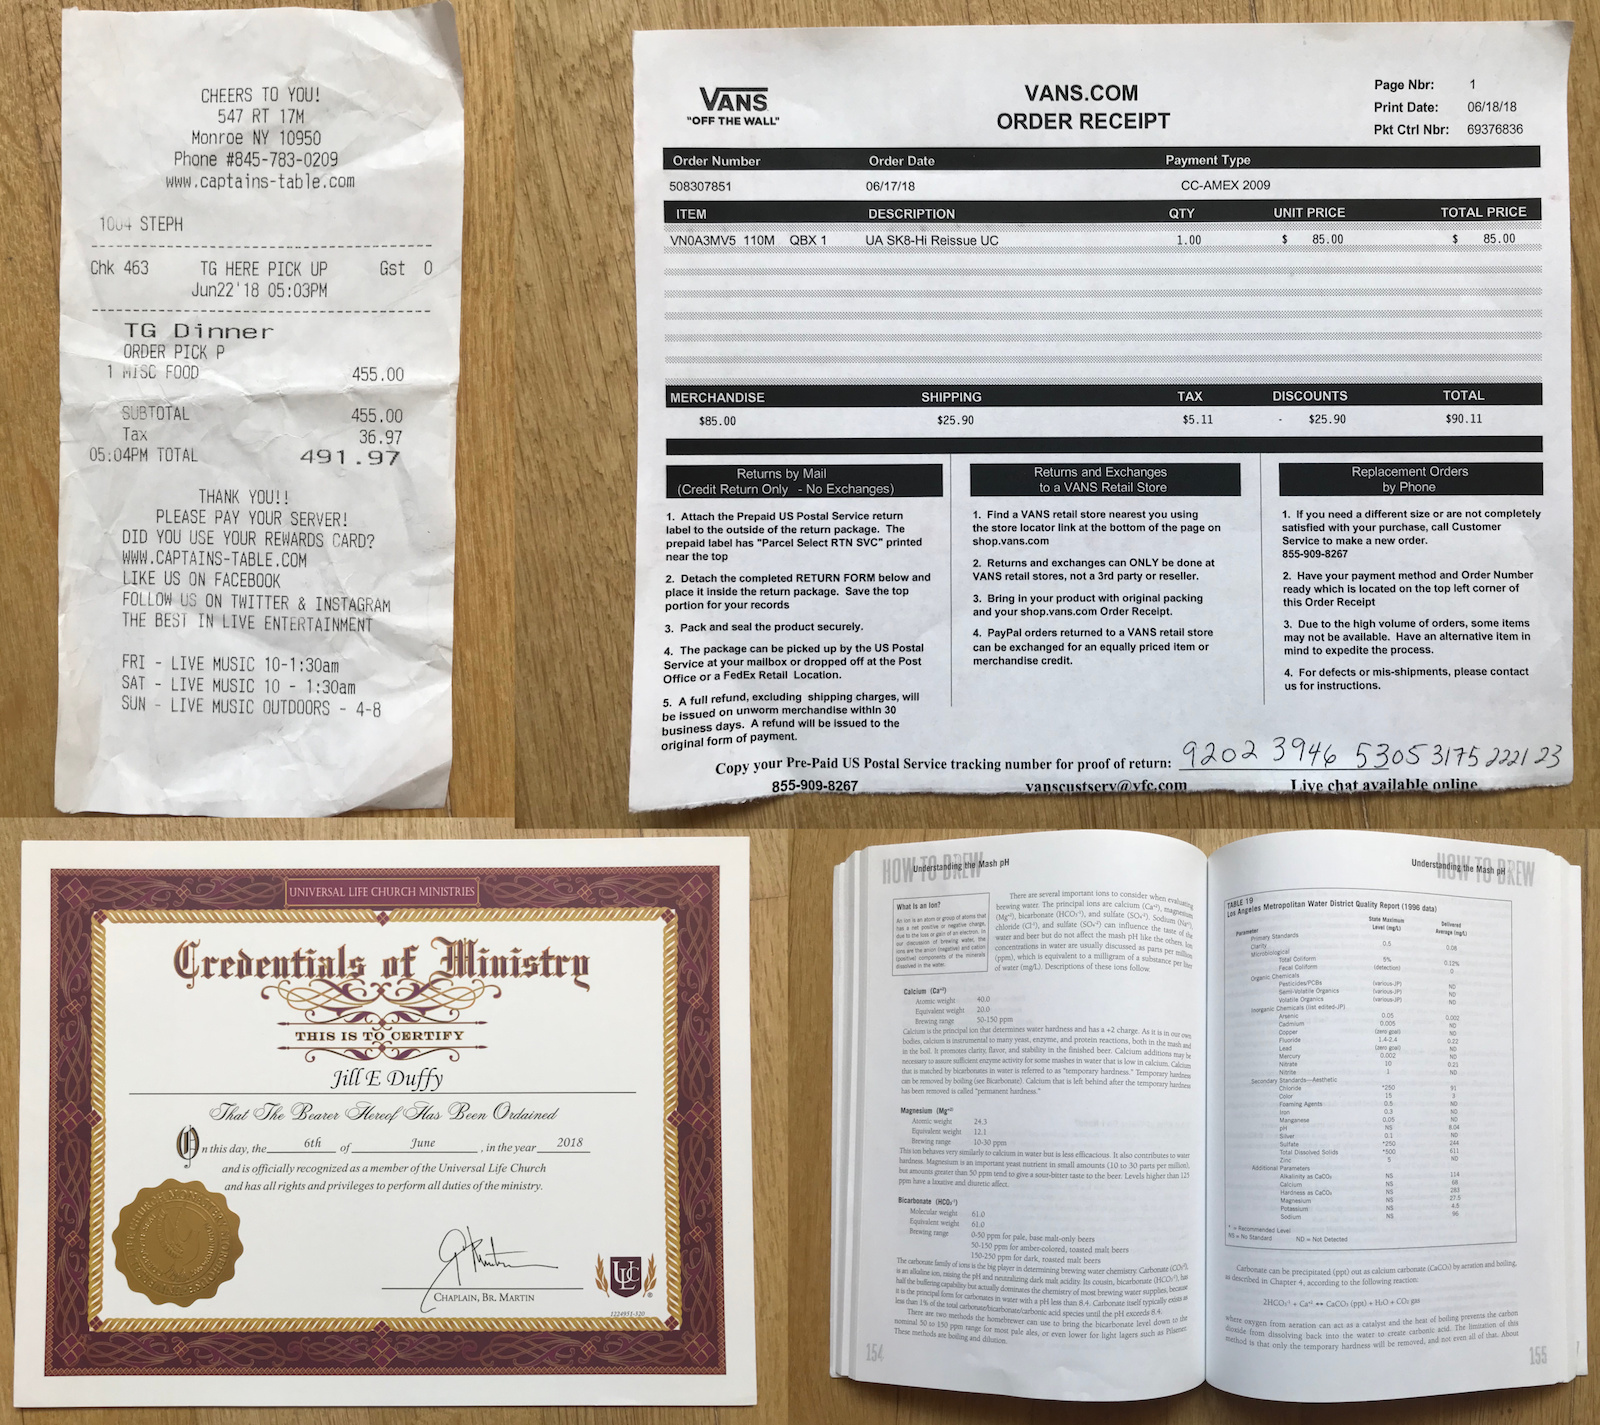 Four documents used for scanning and OCR tests